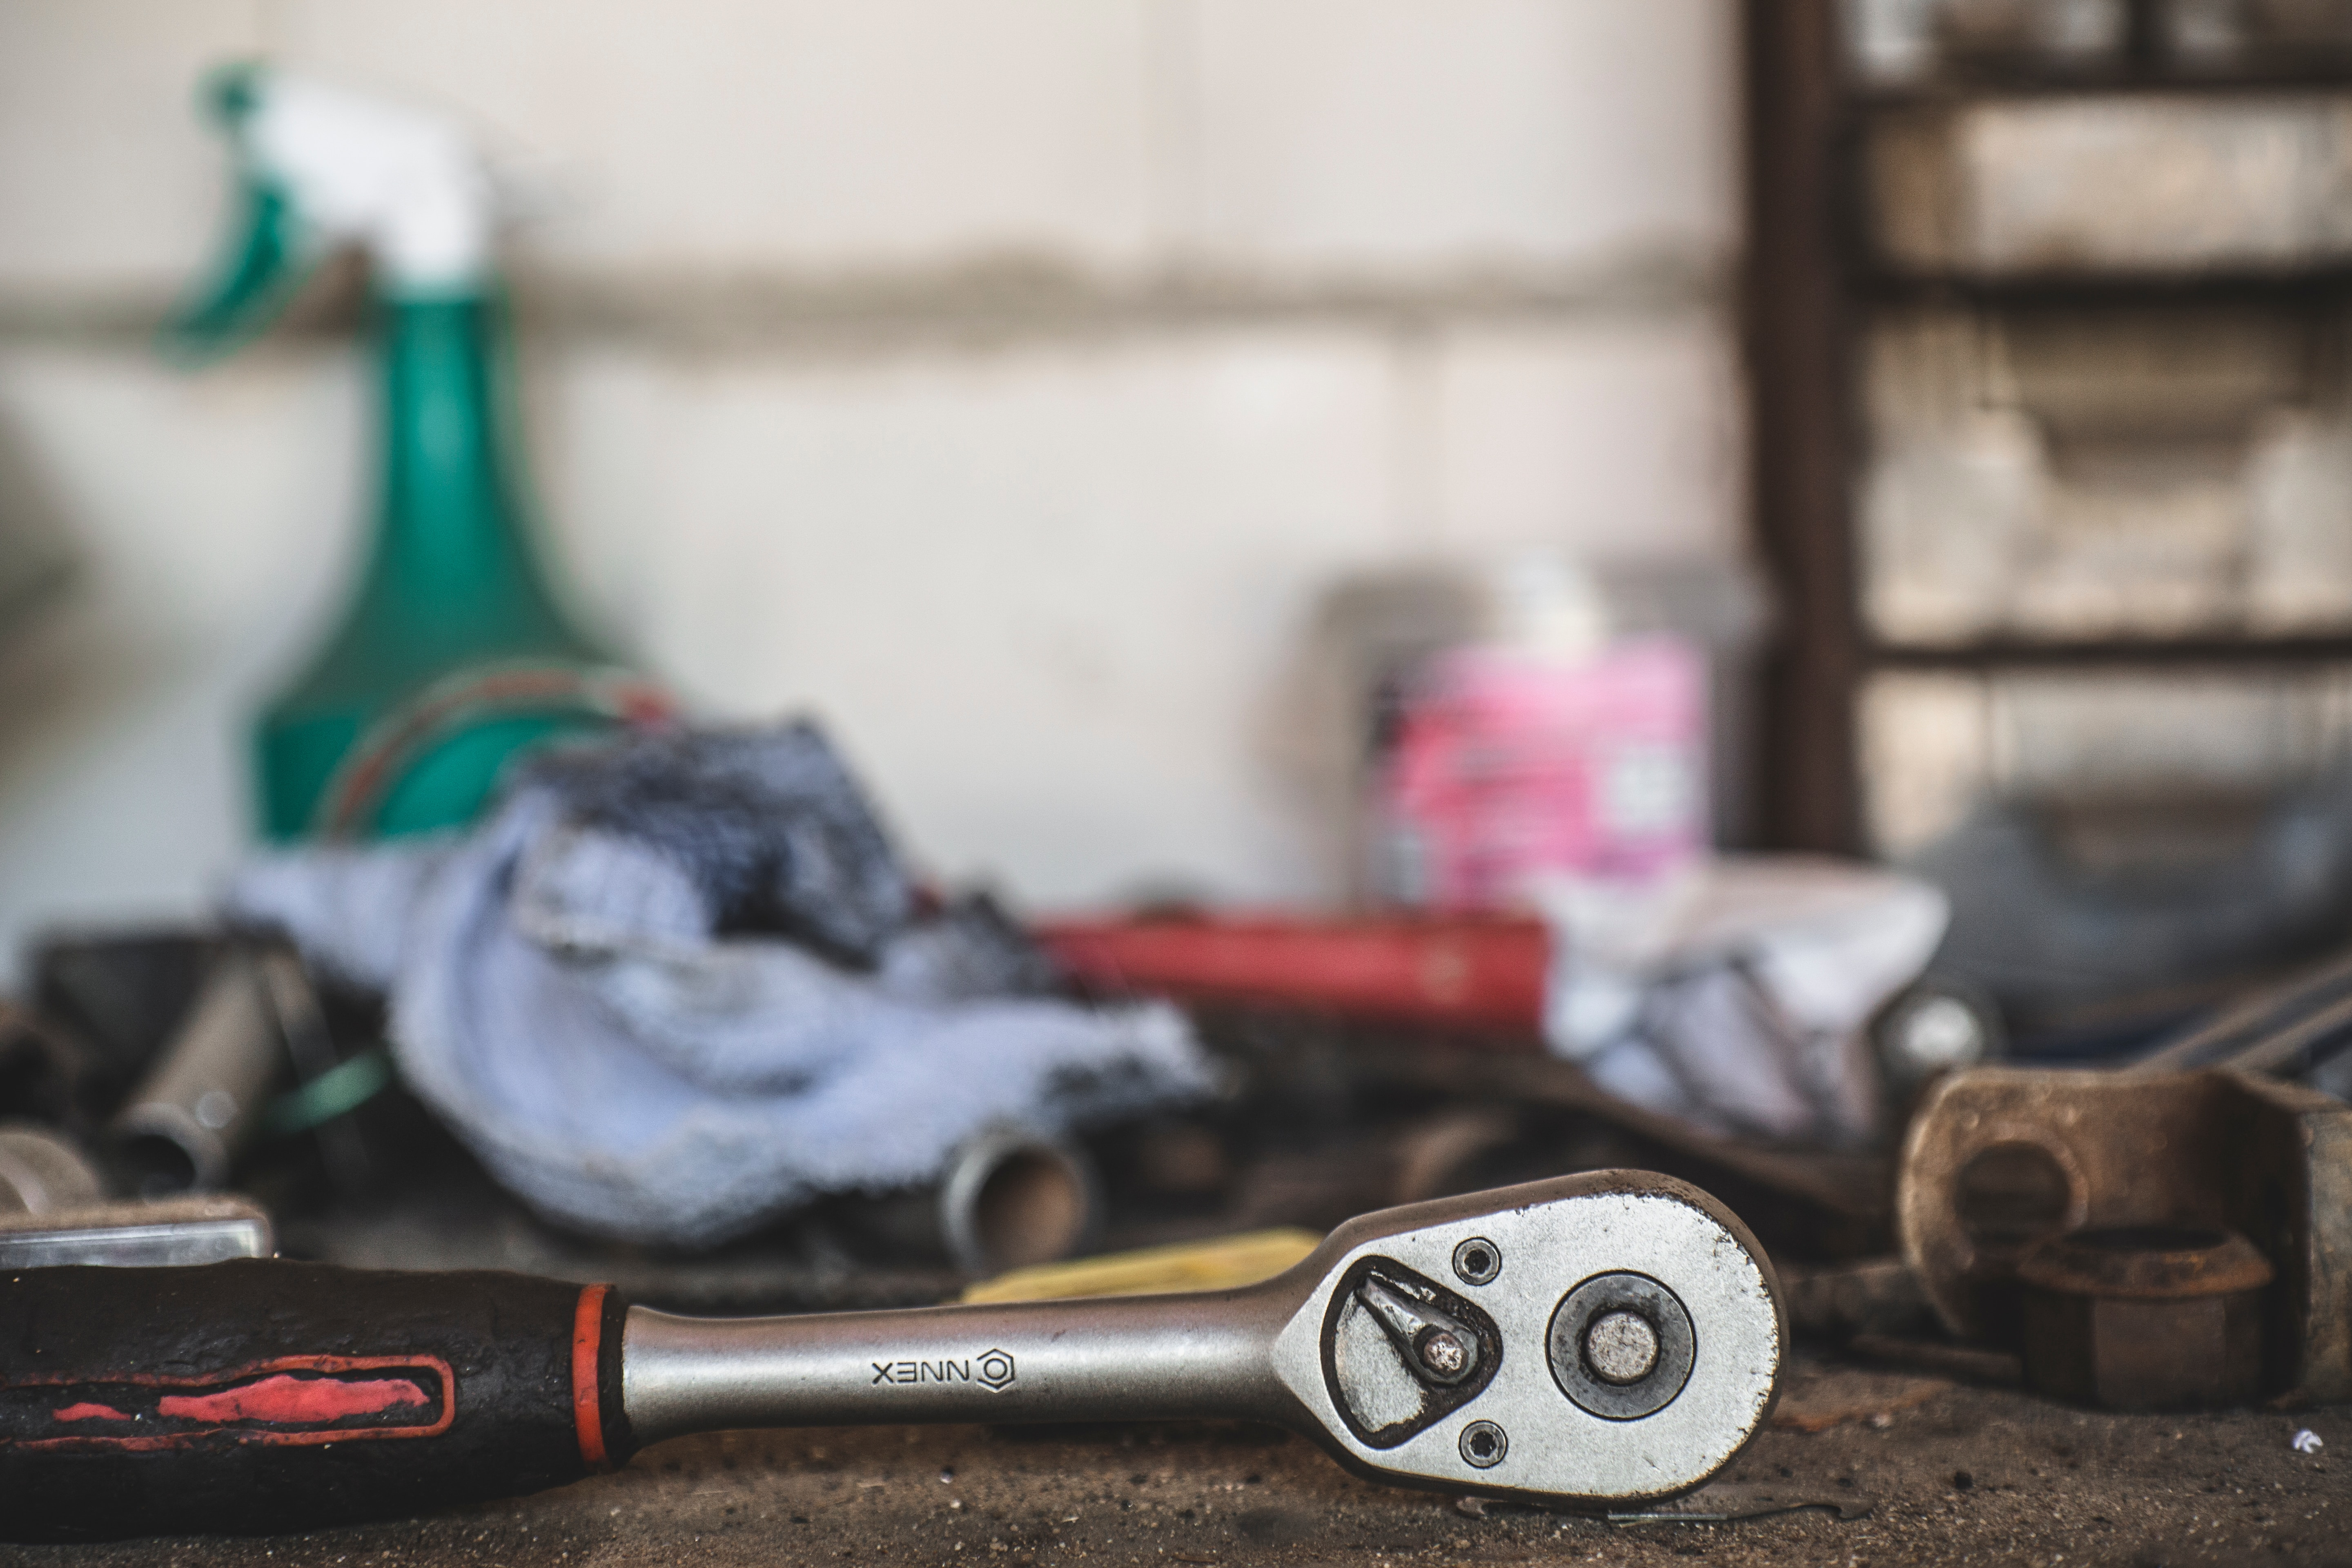 Macro photo of a work bench, highlighting wrenches and other tools used for fire extinguisher repairs, recertification, recharges, and testing.